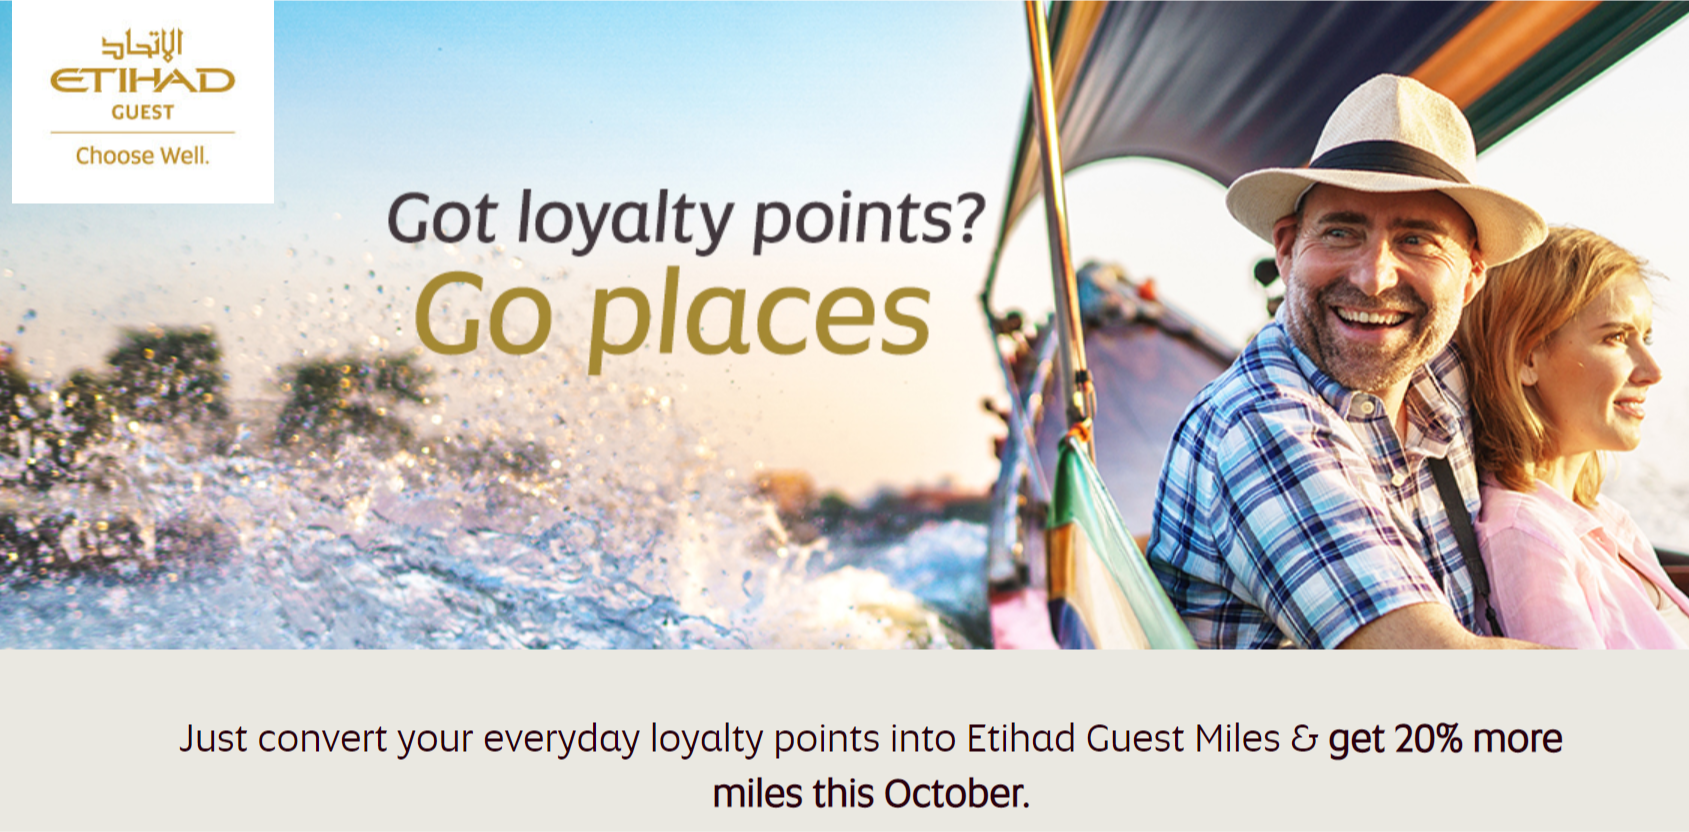 Etihad offering 20% transfer bonus from Hotel and Retain partners